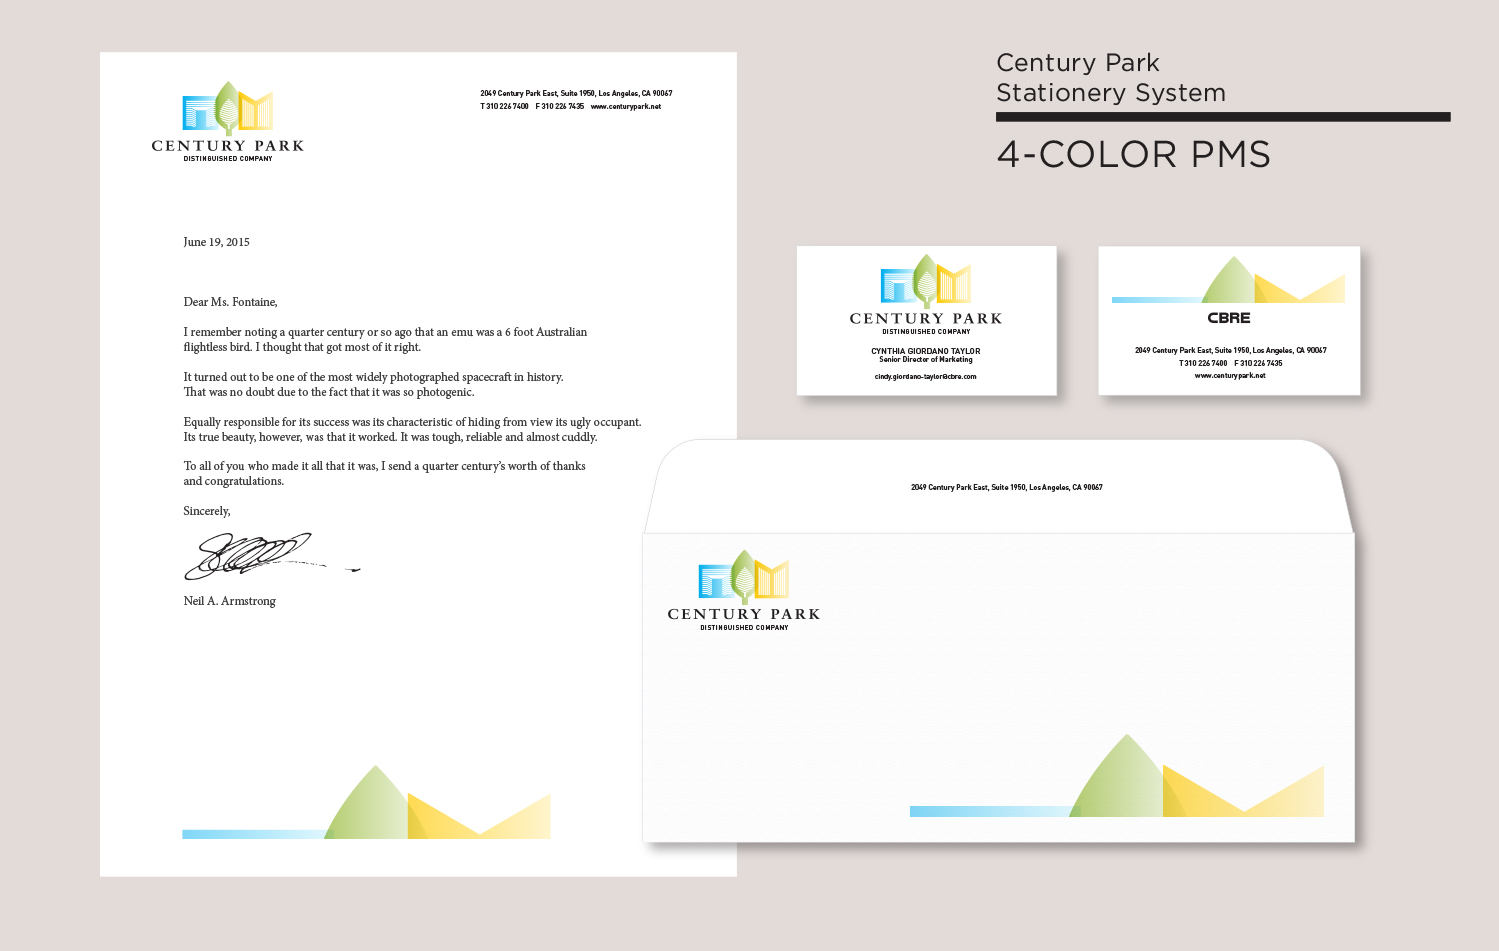 CBRE CP_Stationery.Ideas eb-1.jpg